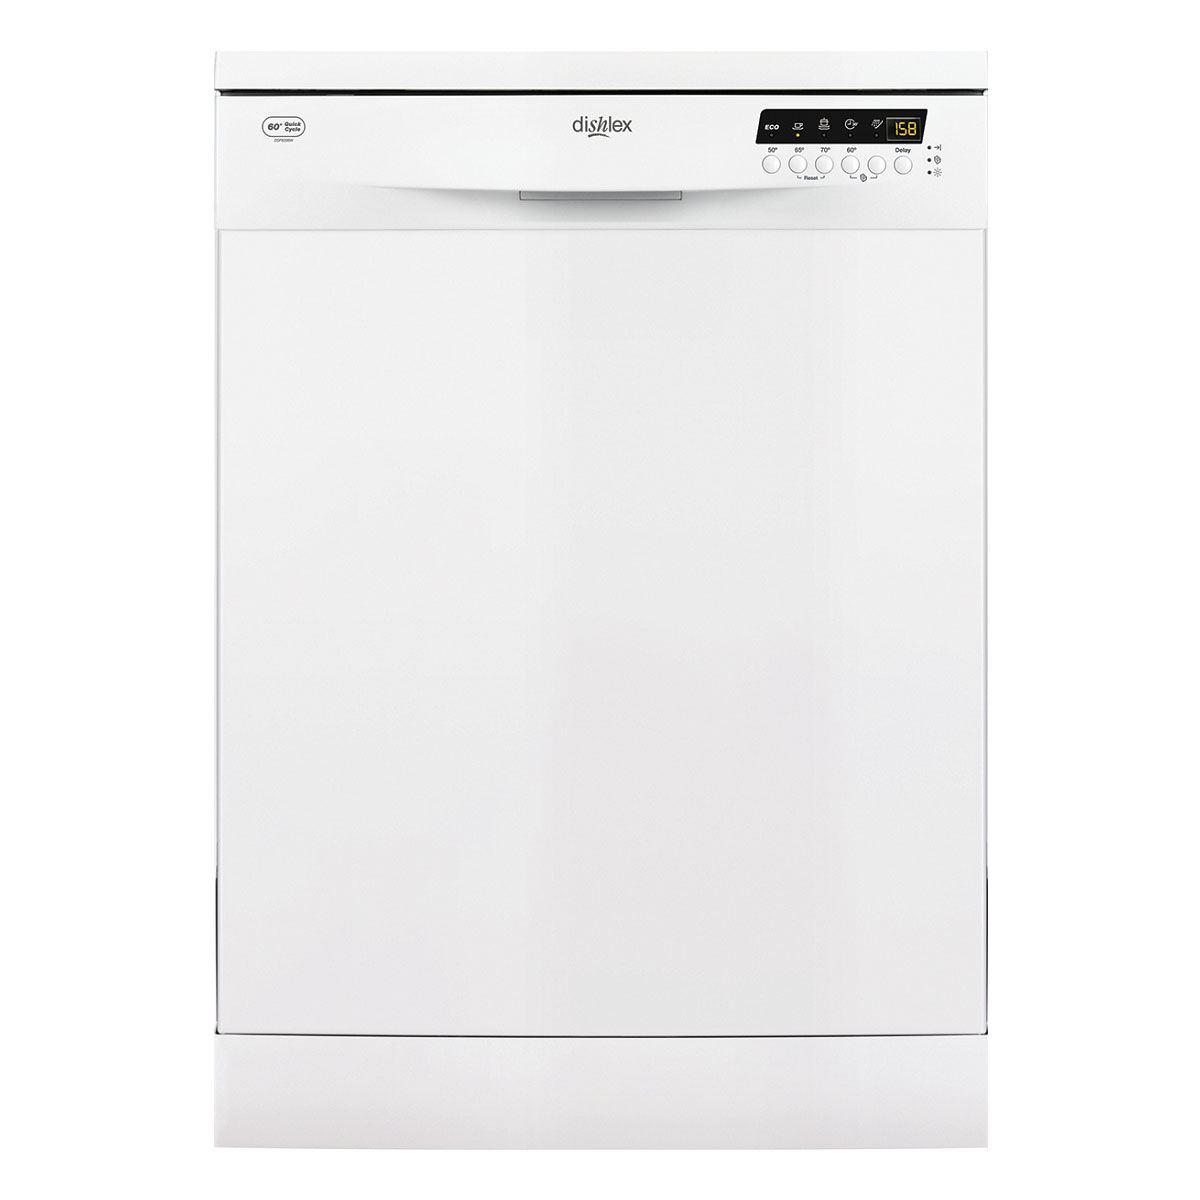 Dishlex DSF6206W Freestanding Dishwasher